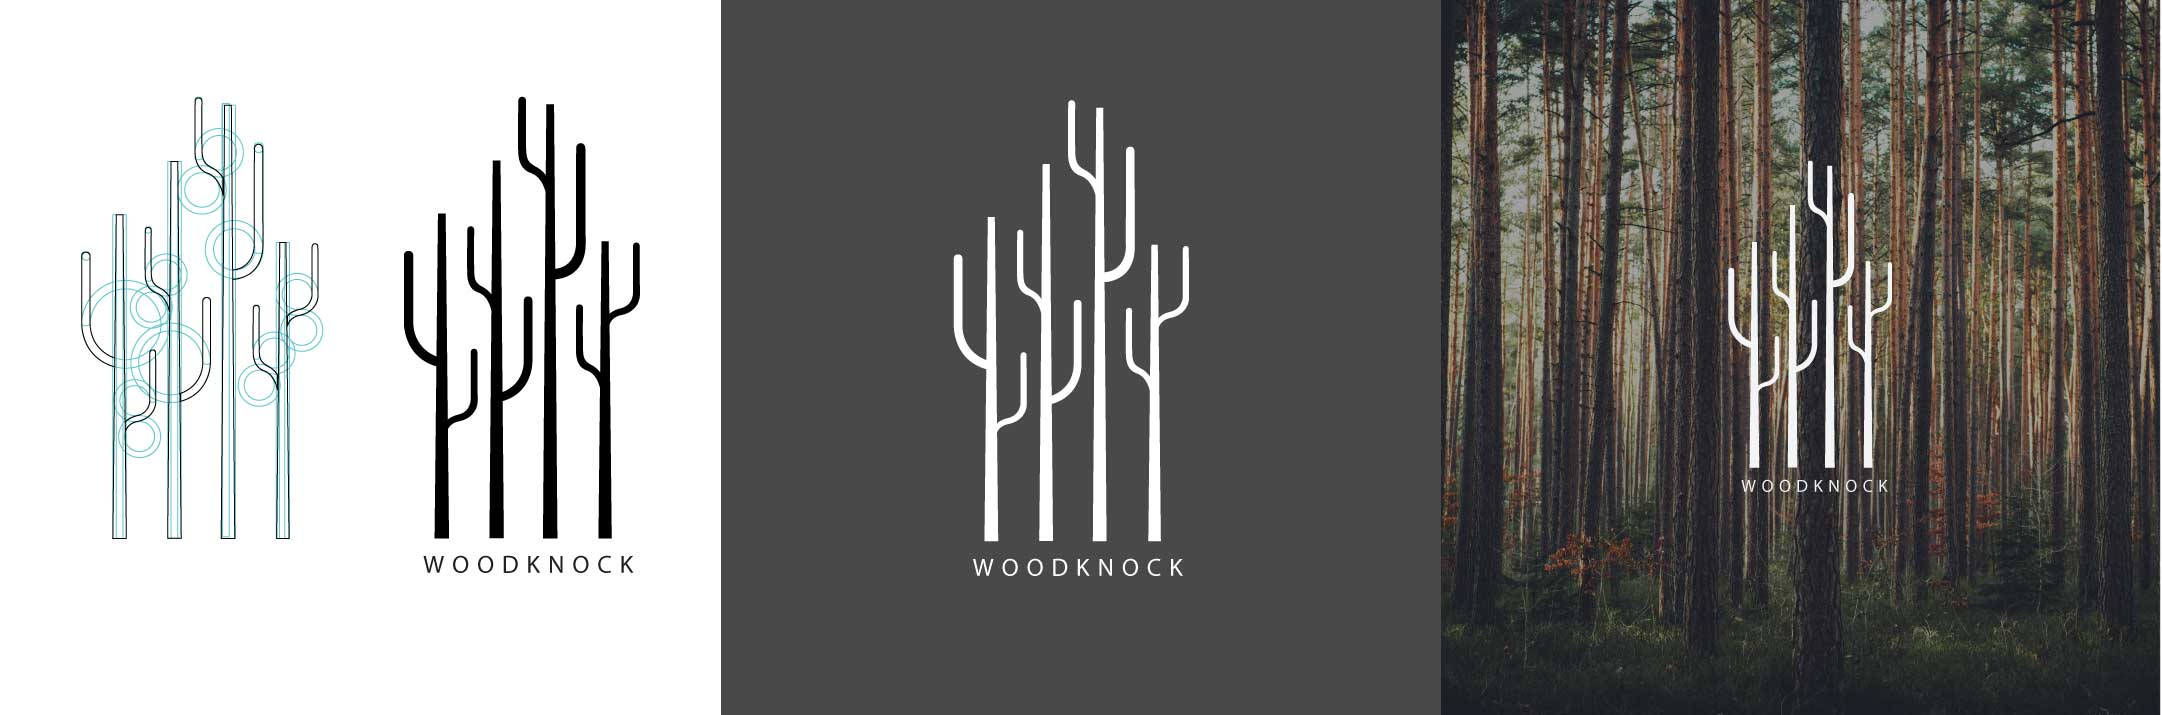 WoodKnock Logo Variation